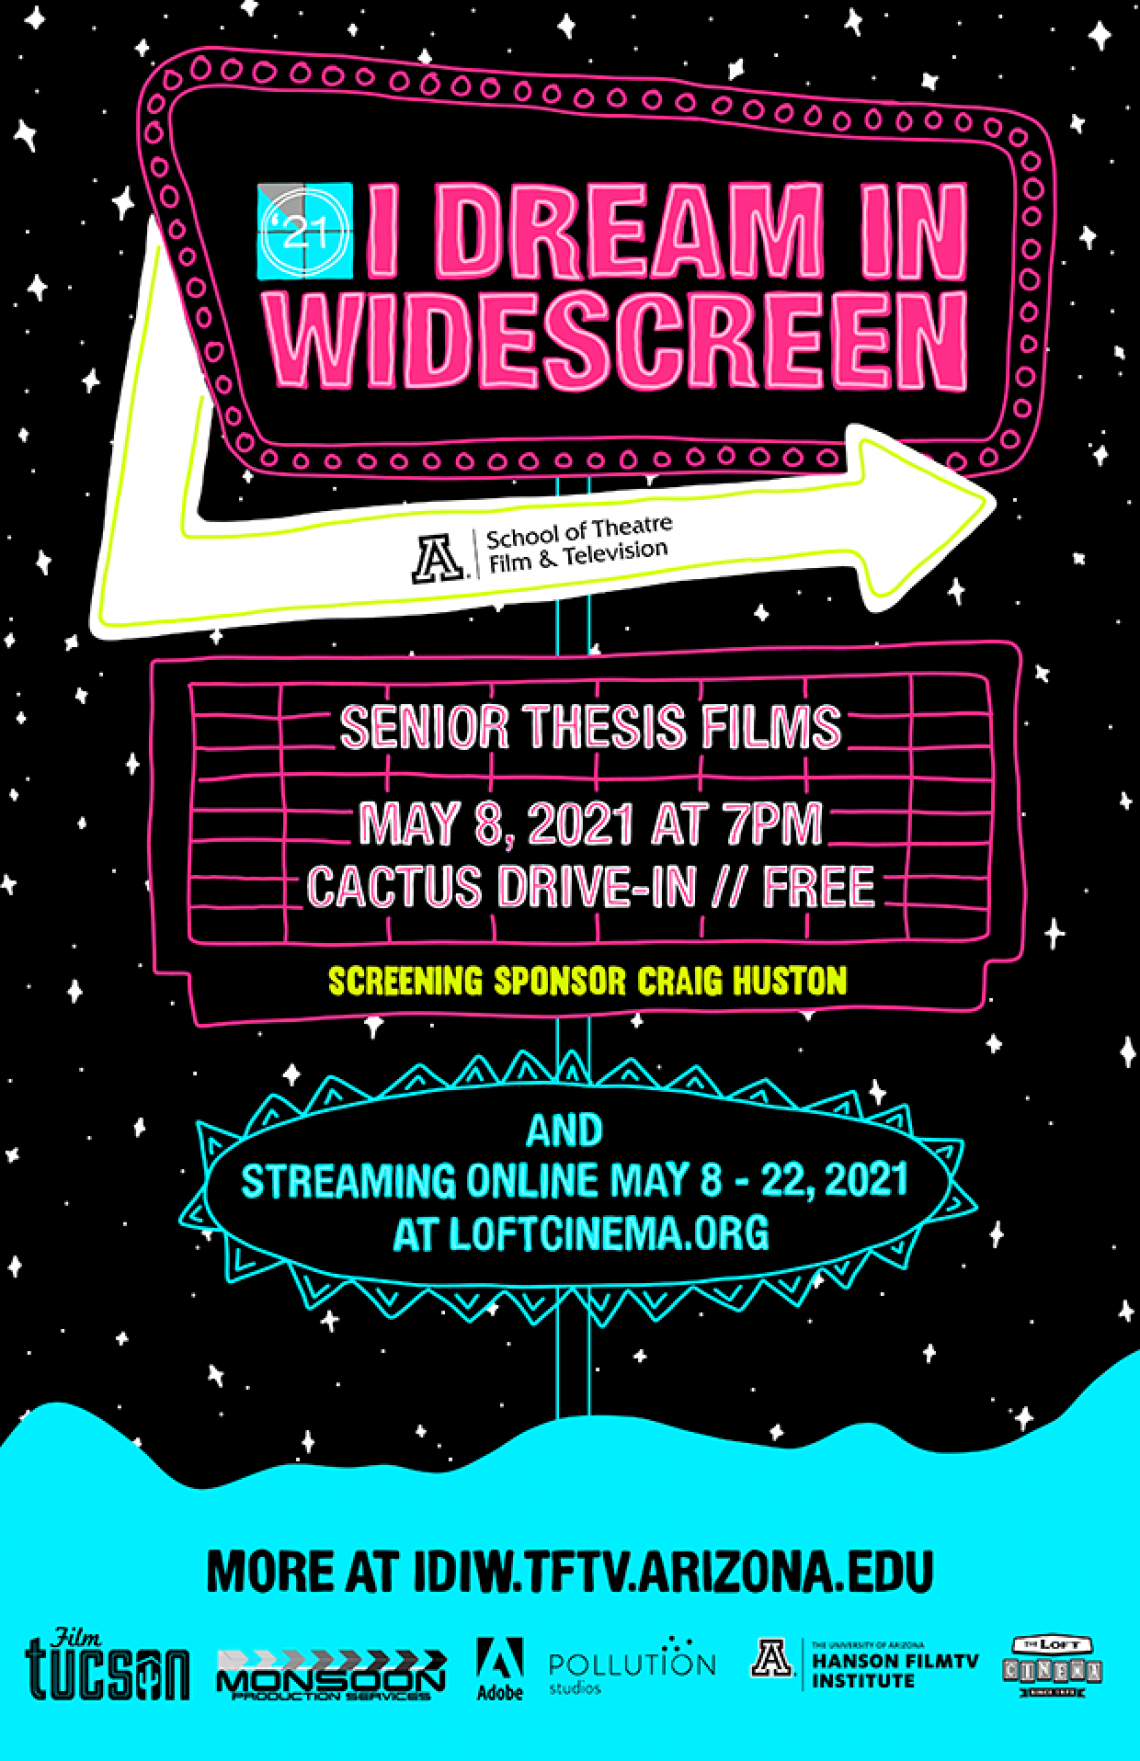 Poster for I Dream in Widescreen 2021 - Neon doodle drawn design, retro road sign with event informa